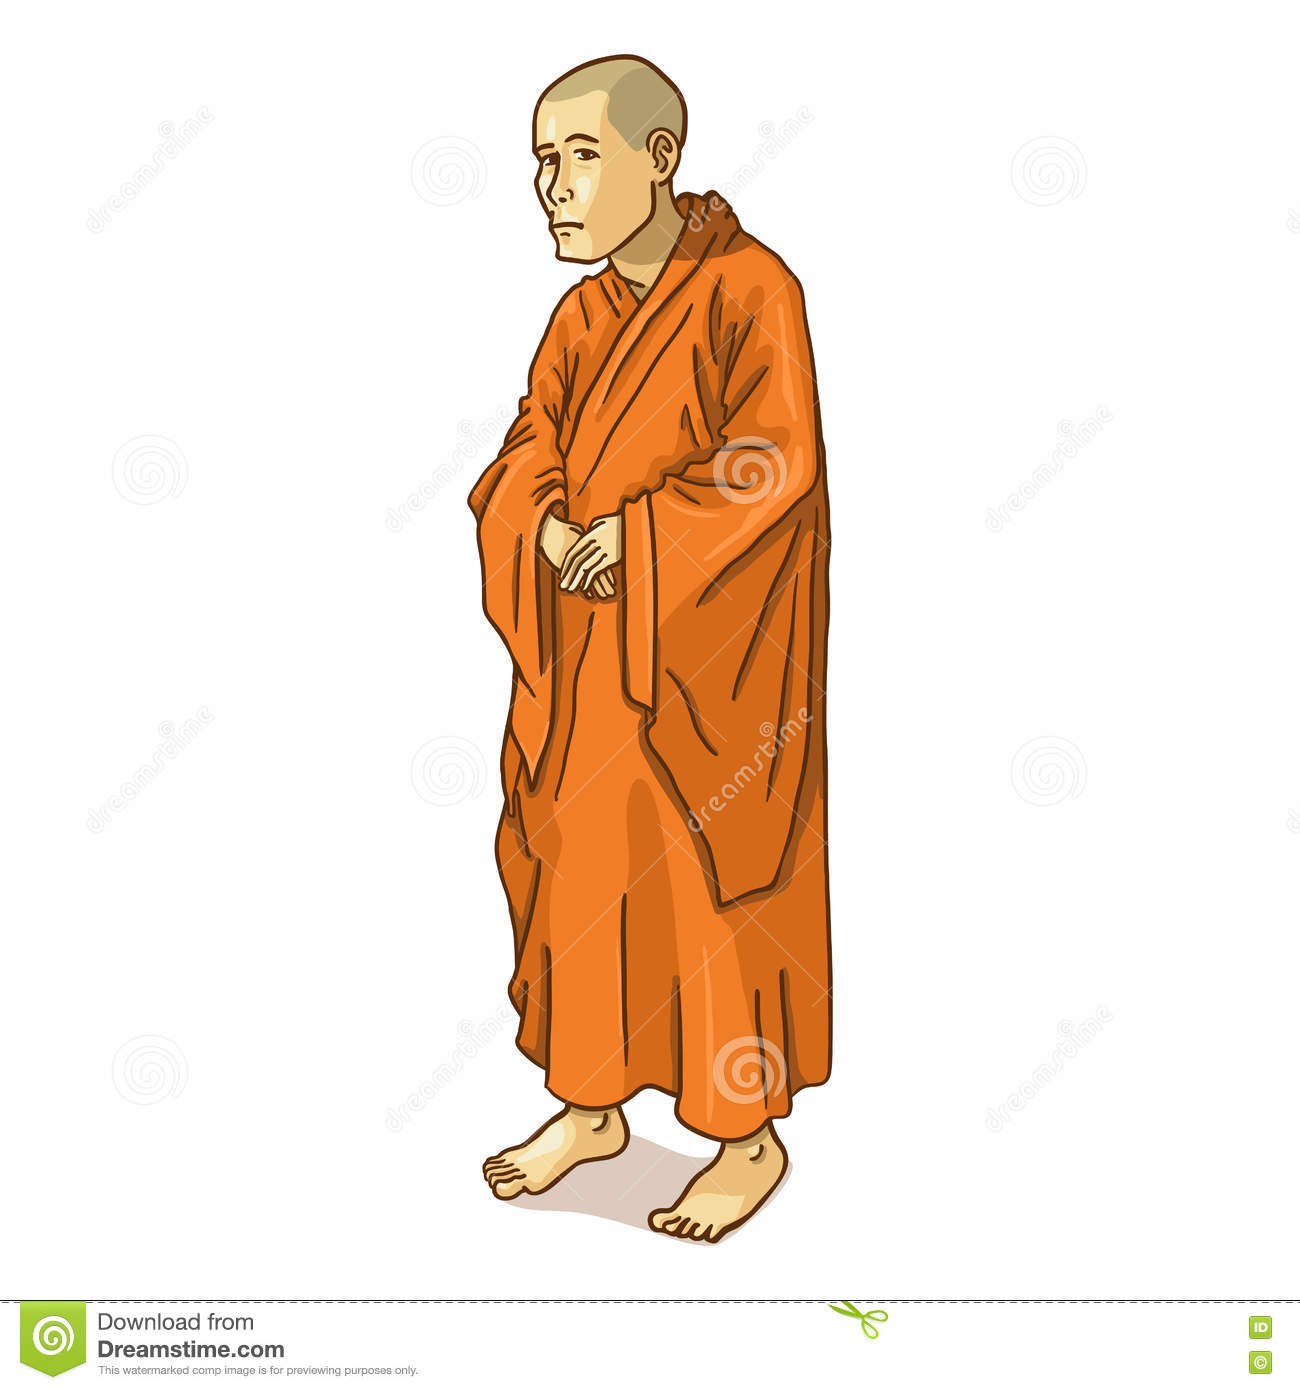 Bleiblerville buddhist single men